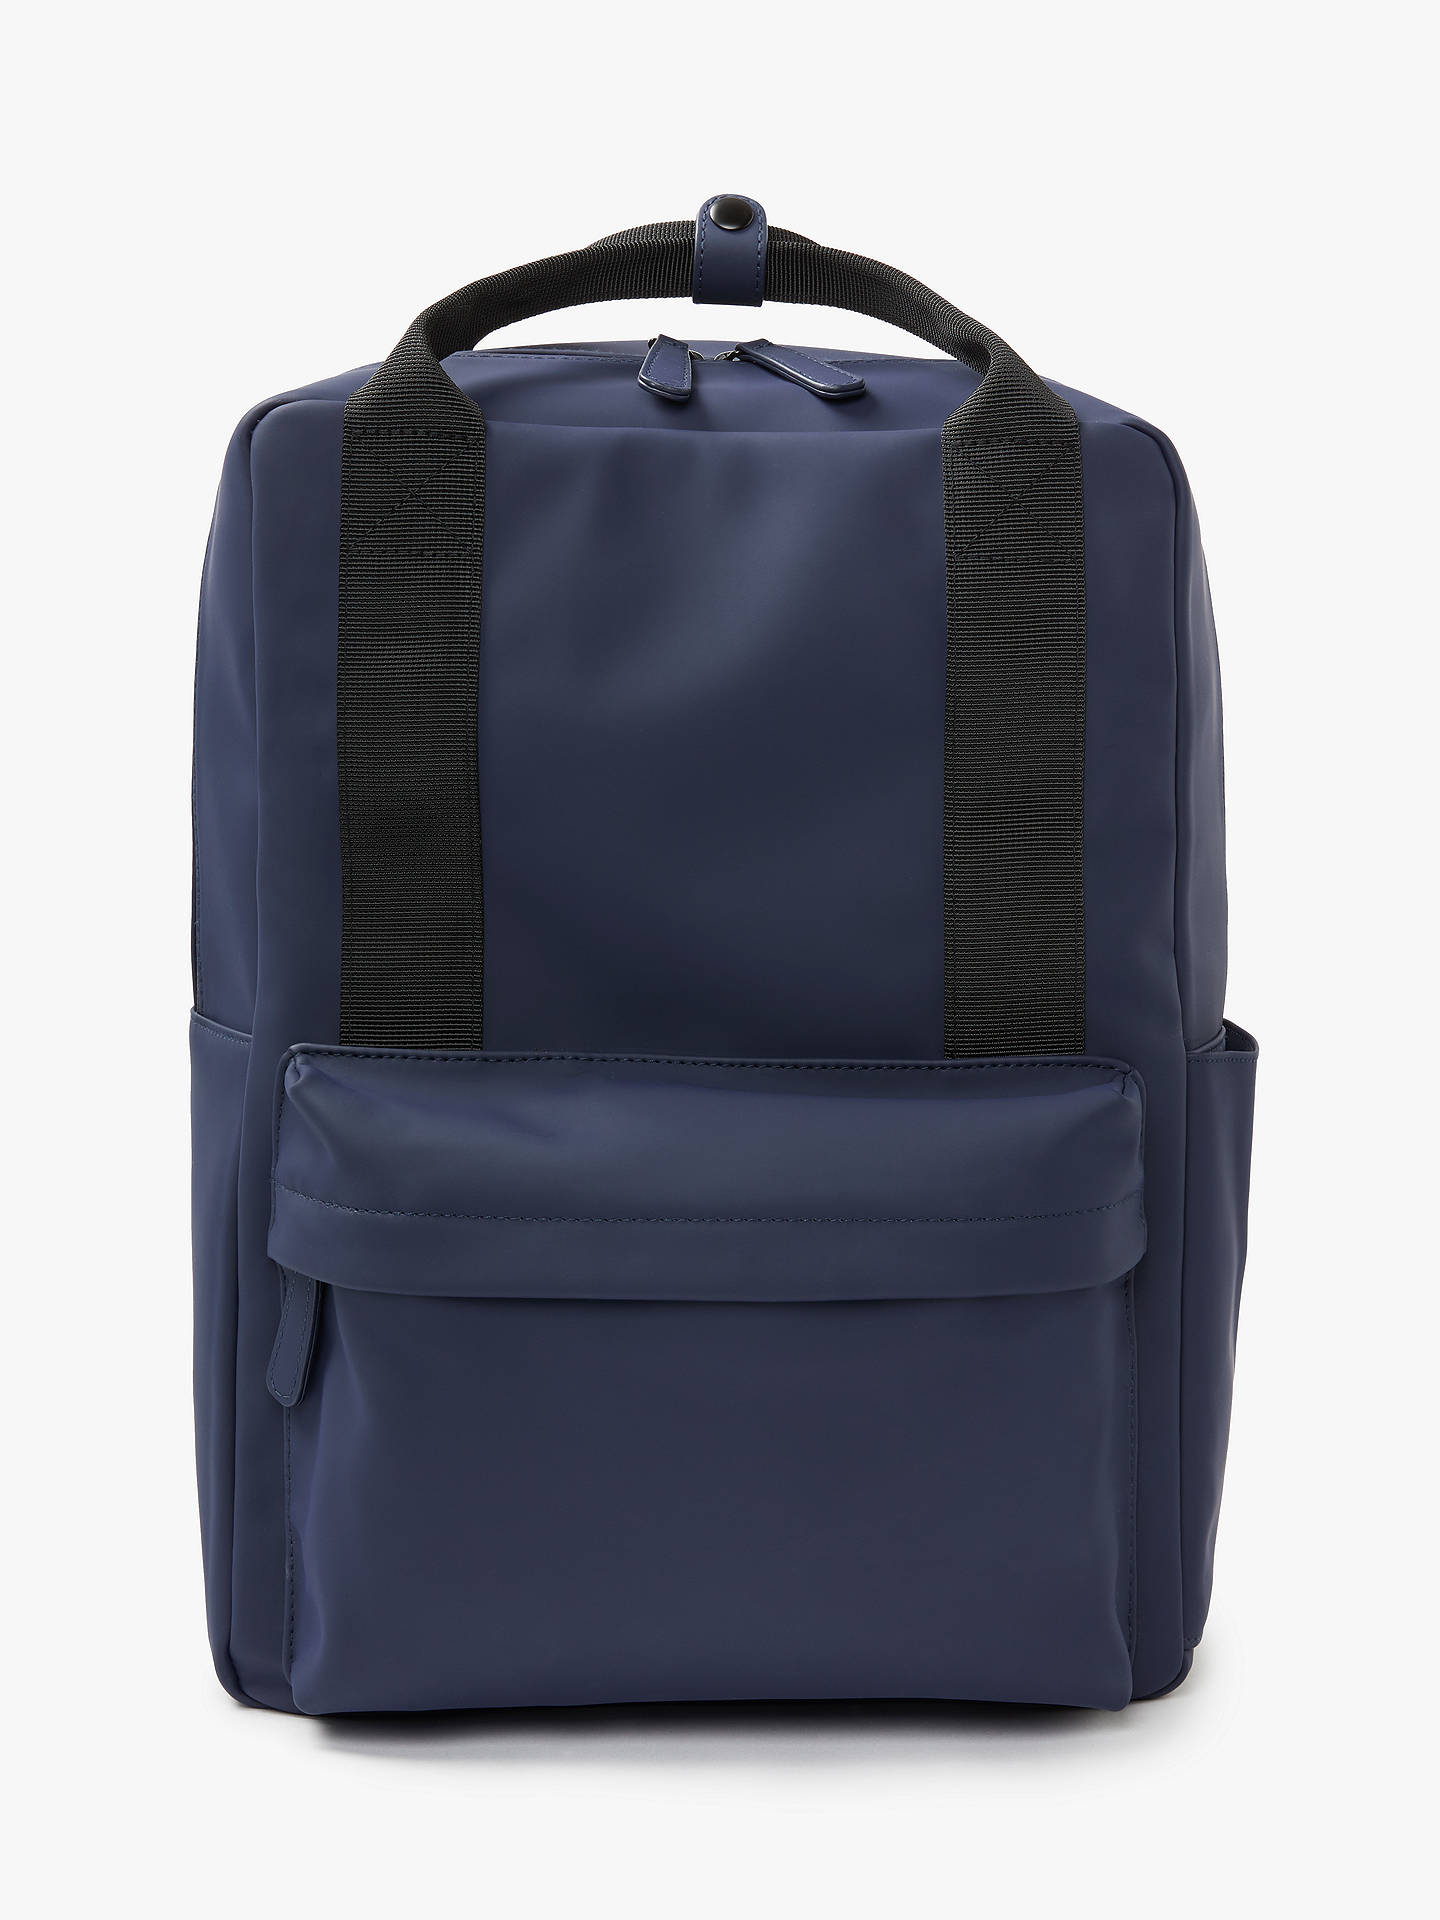 bags for laptop site johnlewis.com